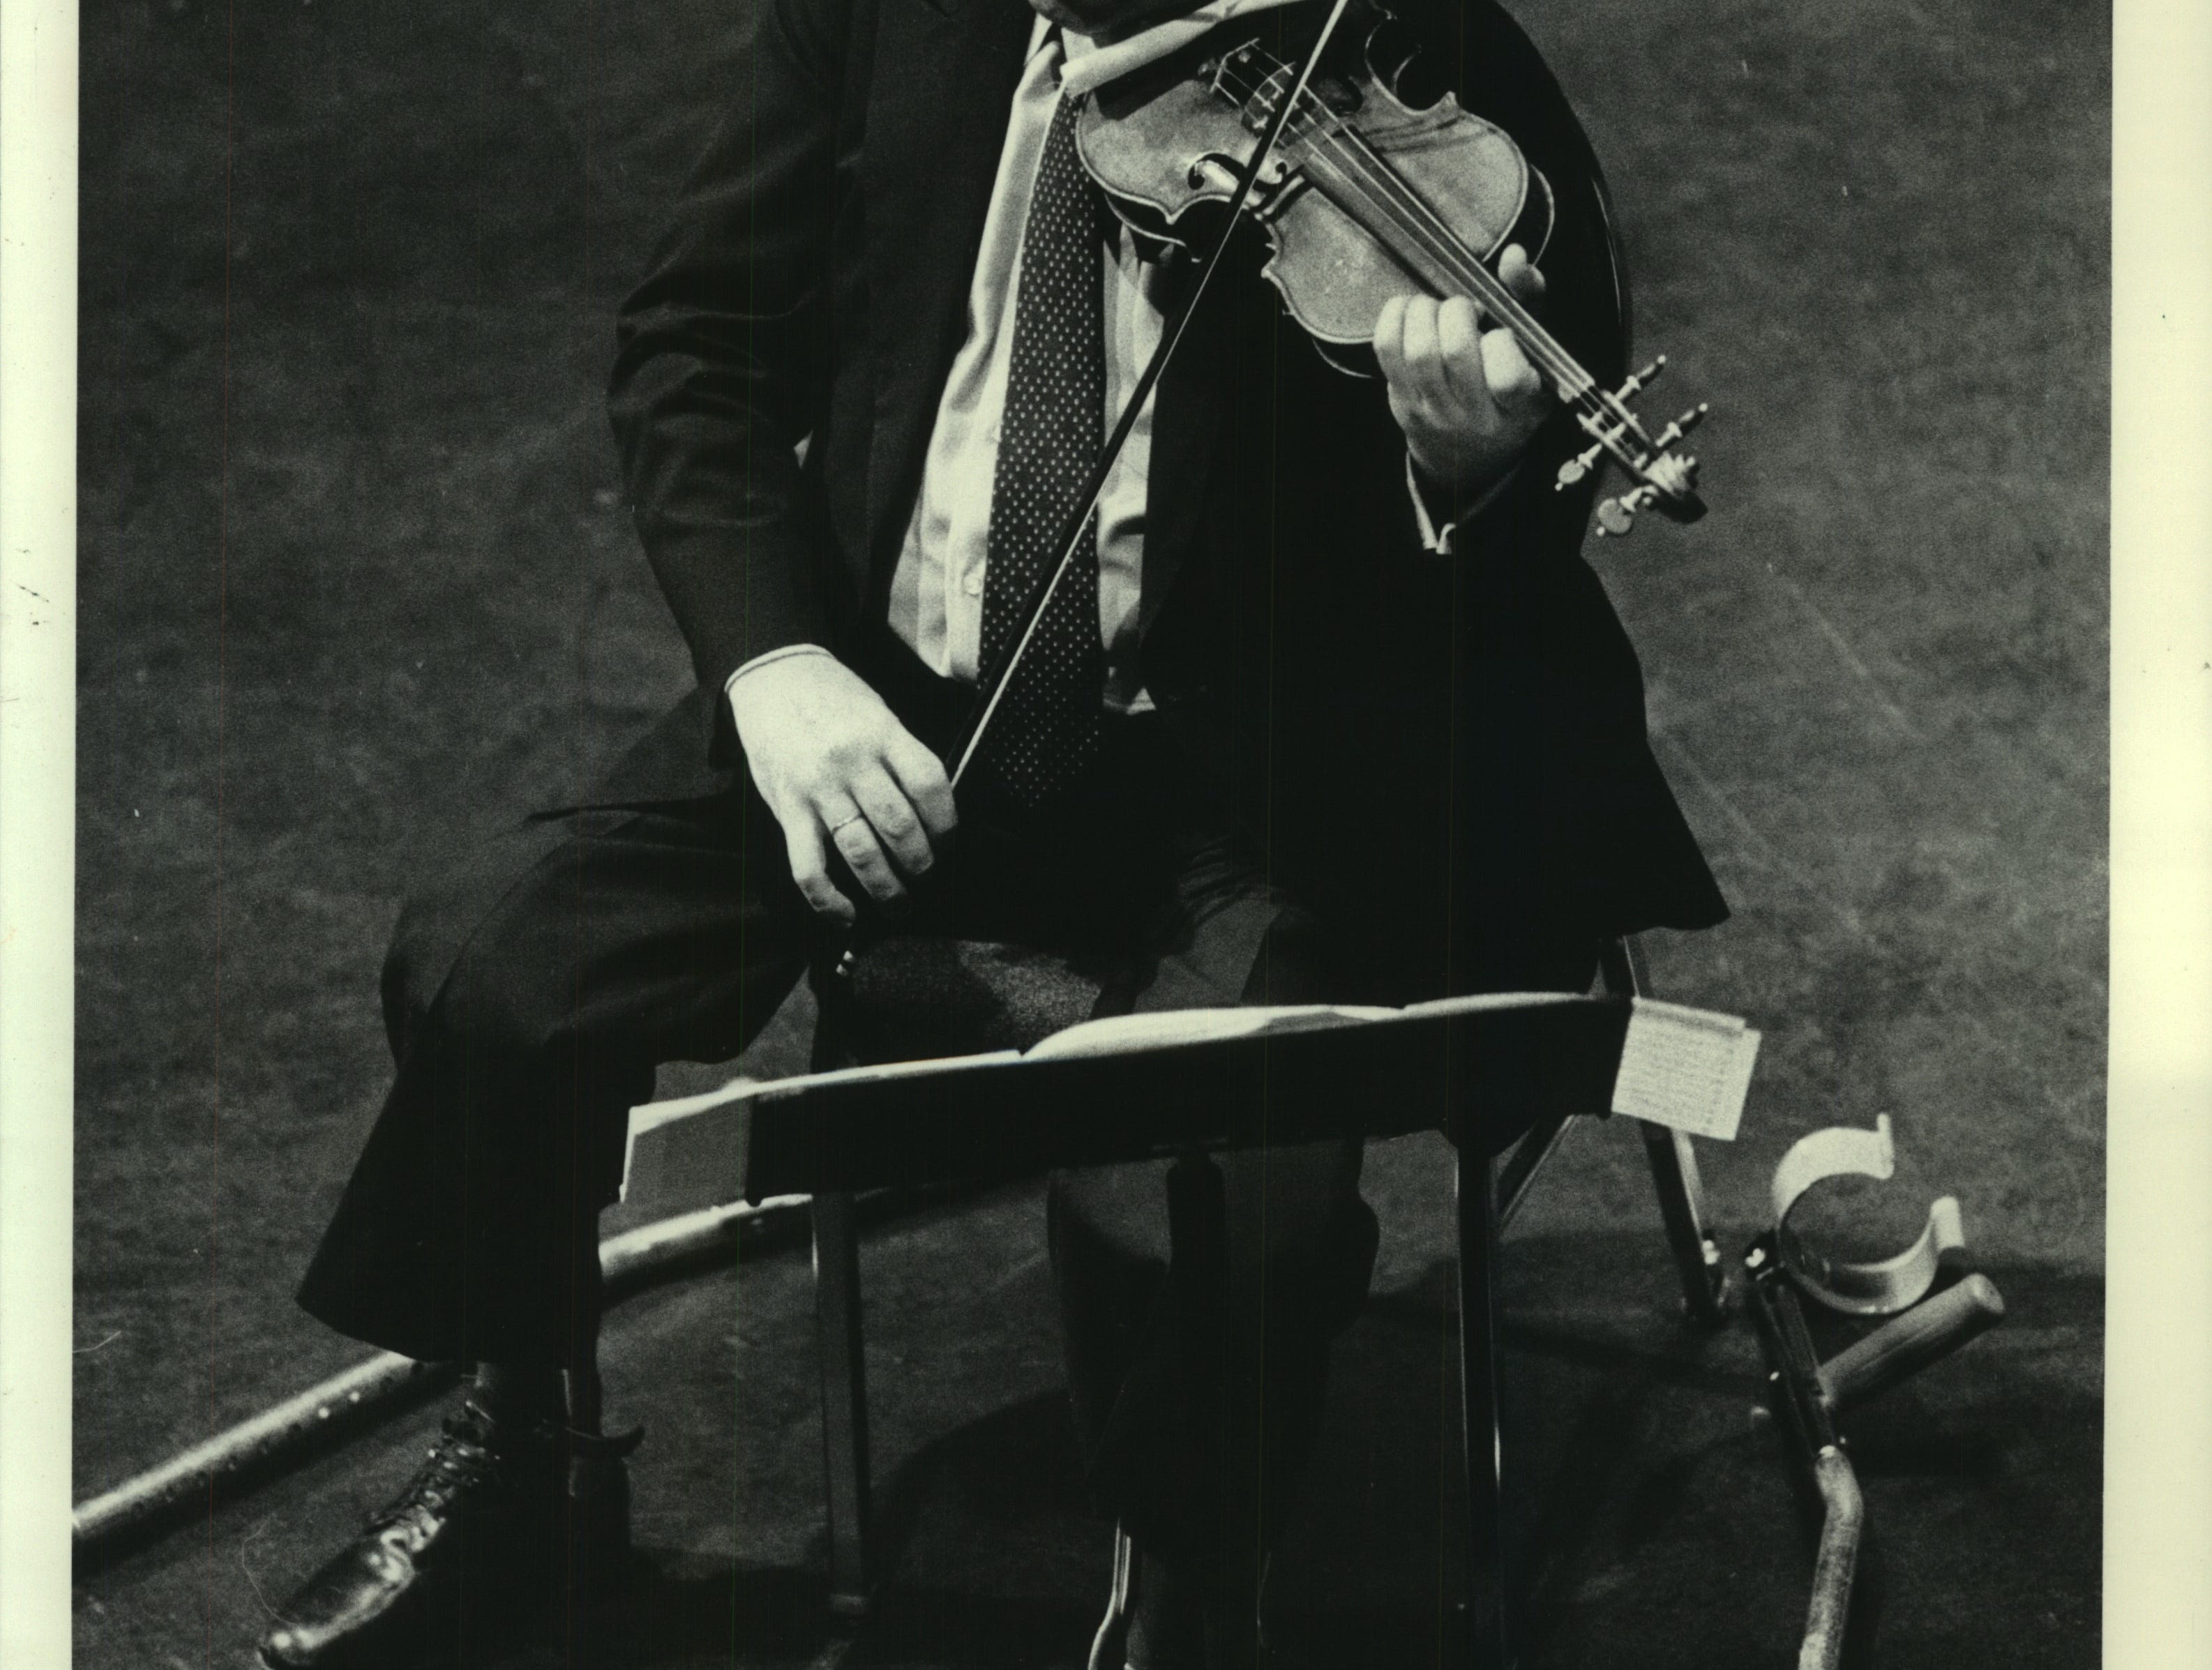 Violinist Itzhak Perlman performed Monday in a recital at the PAC. Perlman at the PAC in a 1984 concert.